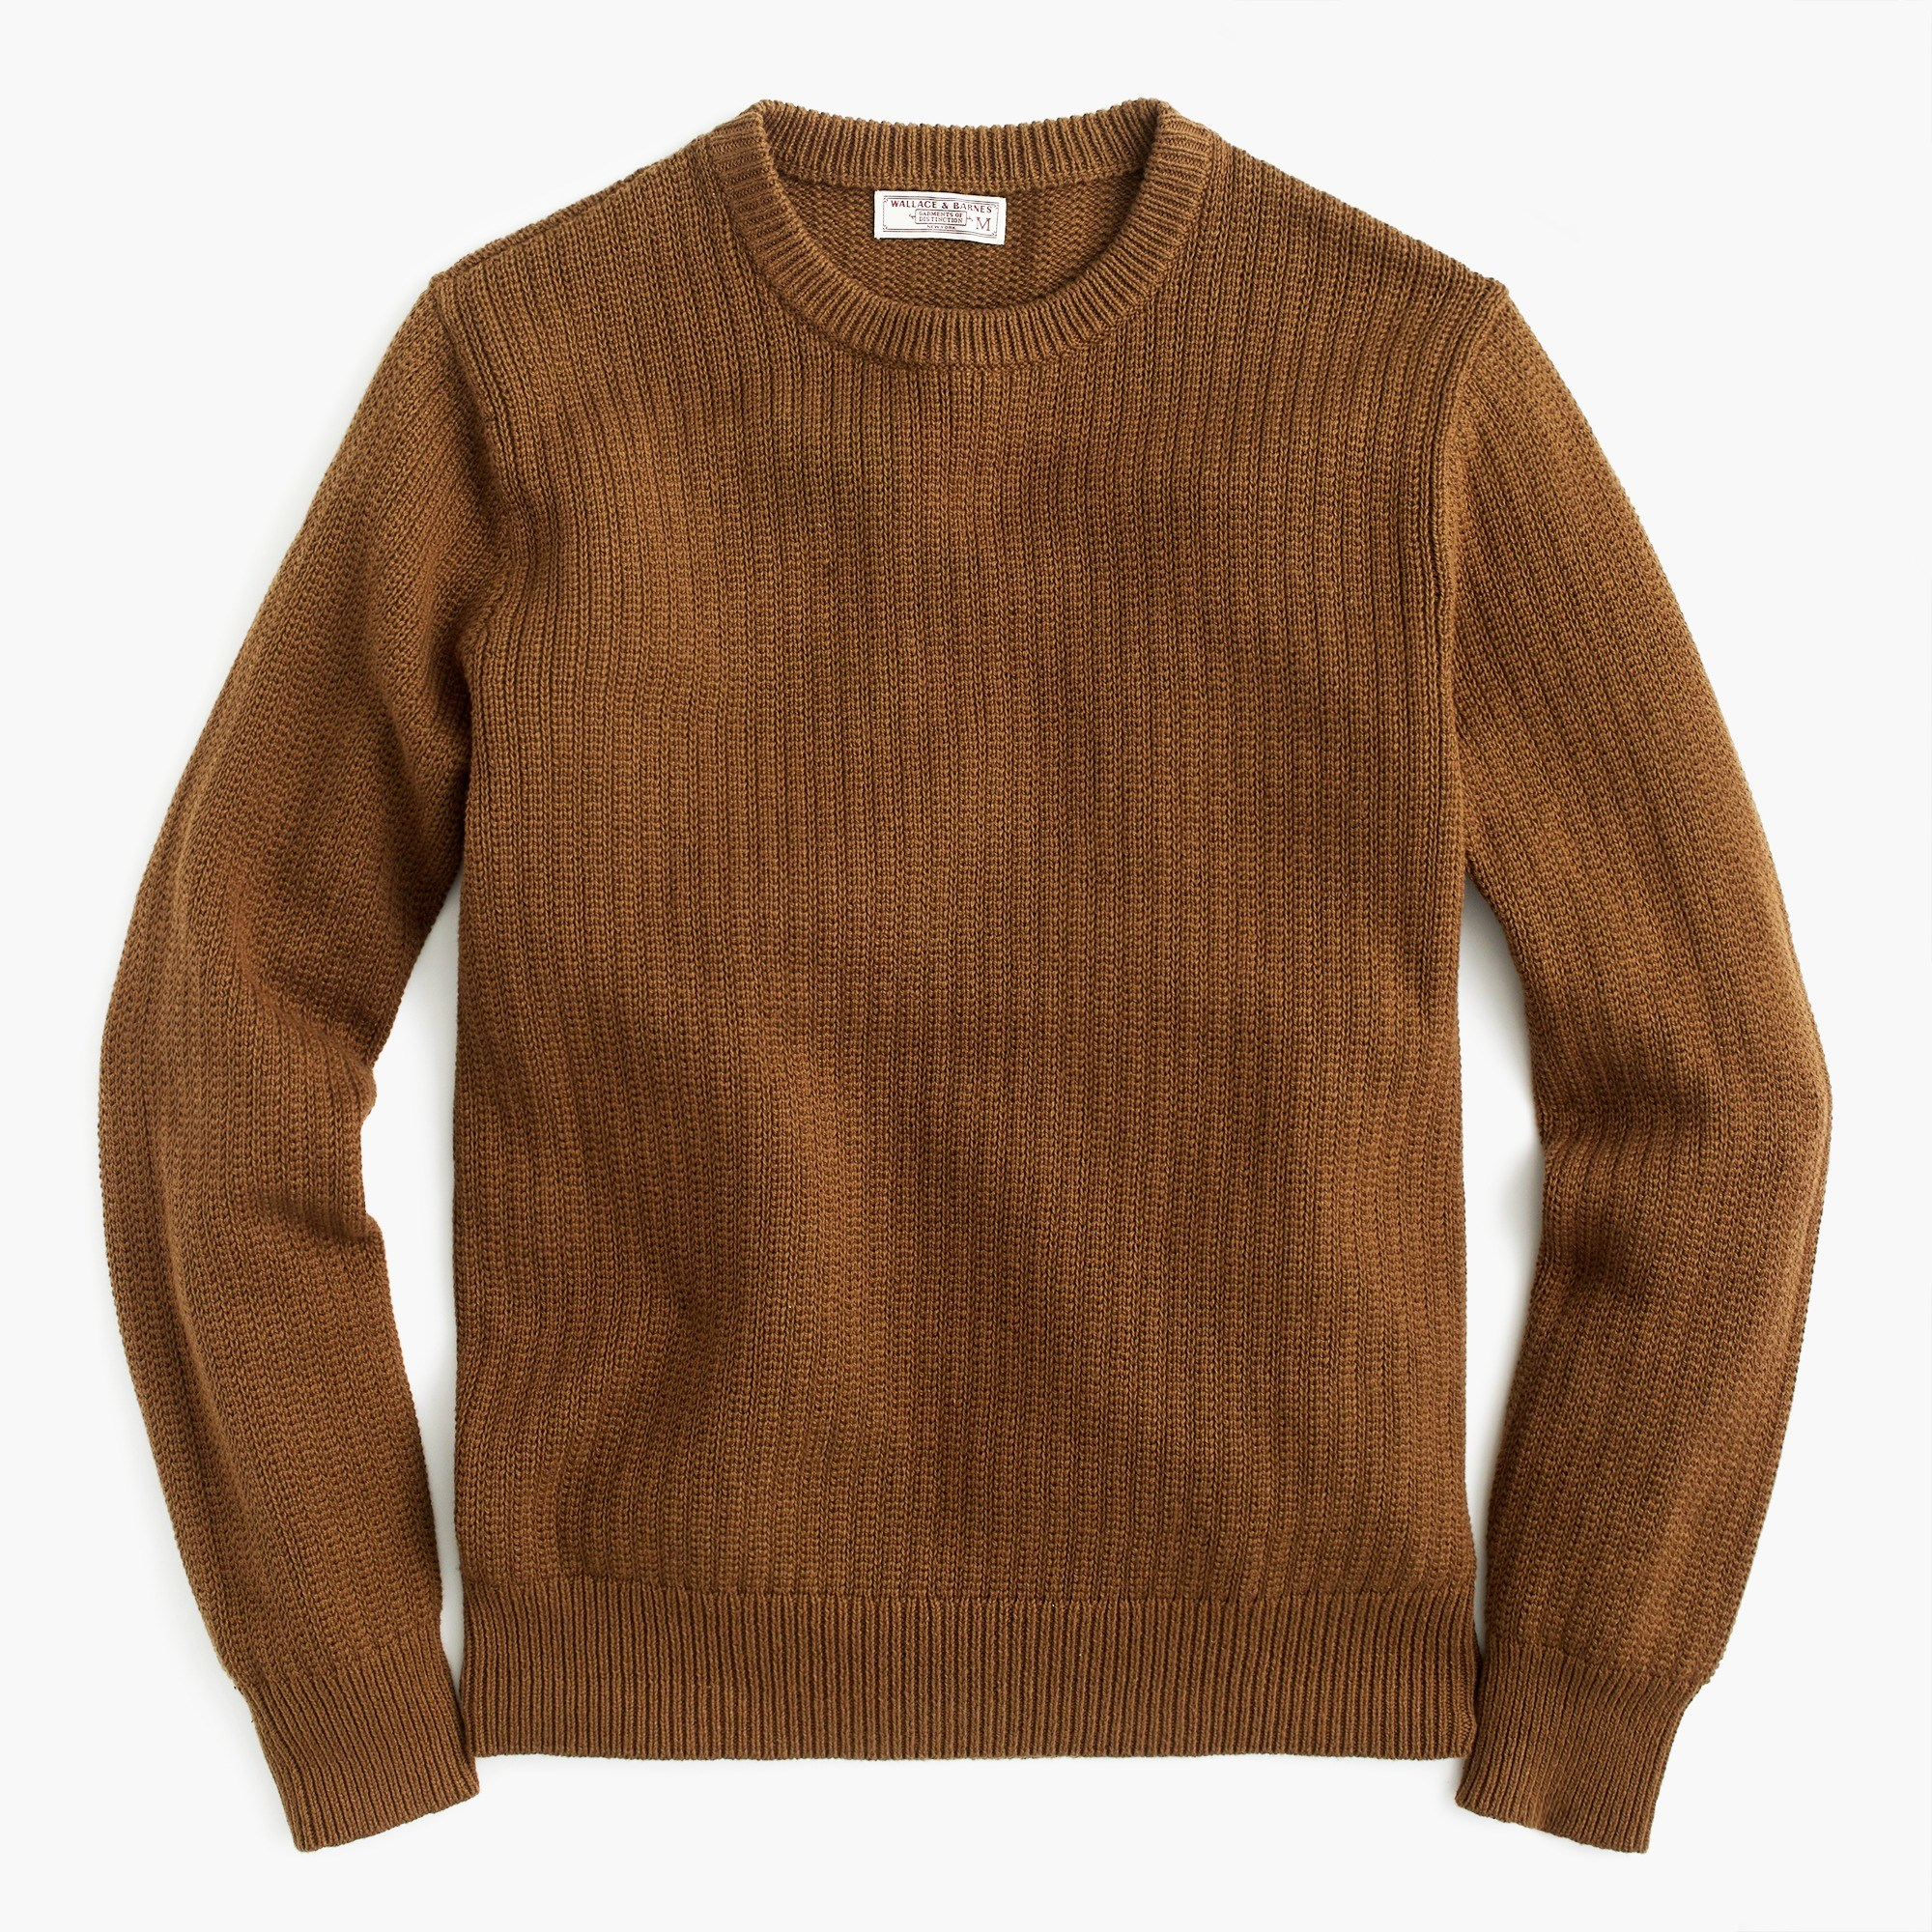 Brown Sweaters menu0027s wallace - barnes cotton sweater in brown vertical stitch - menu0027s  sweaters KEHKFSG